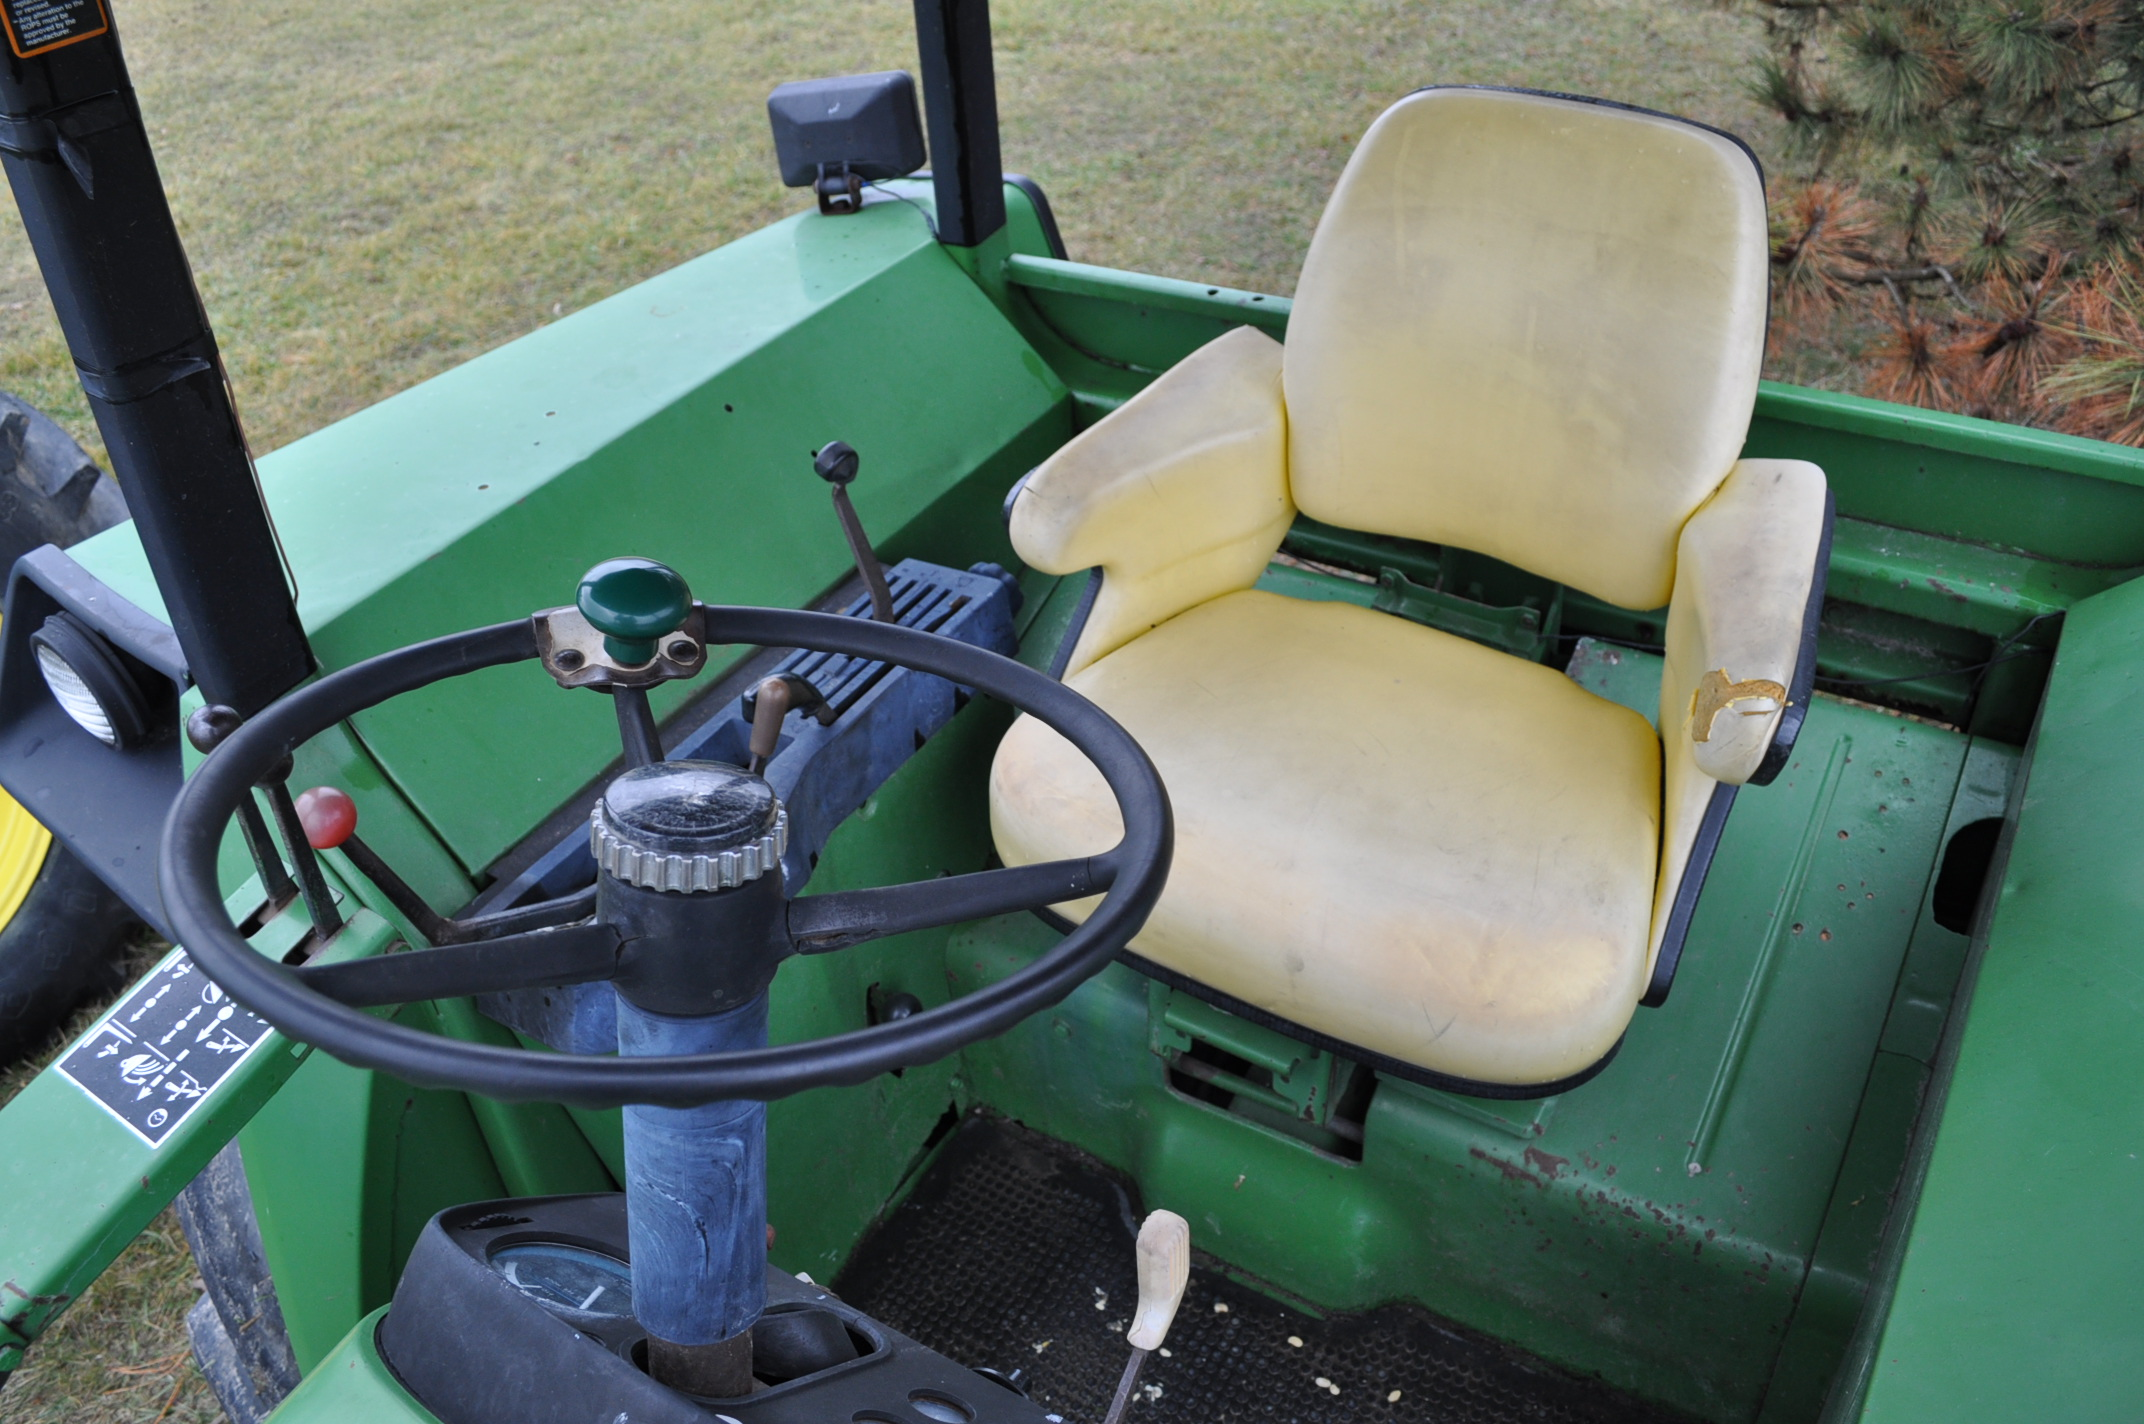 John Deere 4030 tractor, diesel, 18.4-34 rear duals, rear wts, 9.5-15 front, 4-post canopy, Syncro, - Image 19 of 26